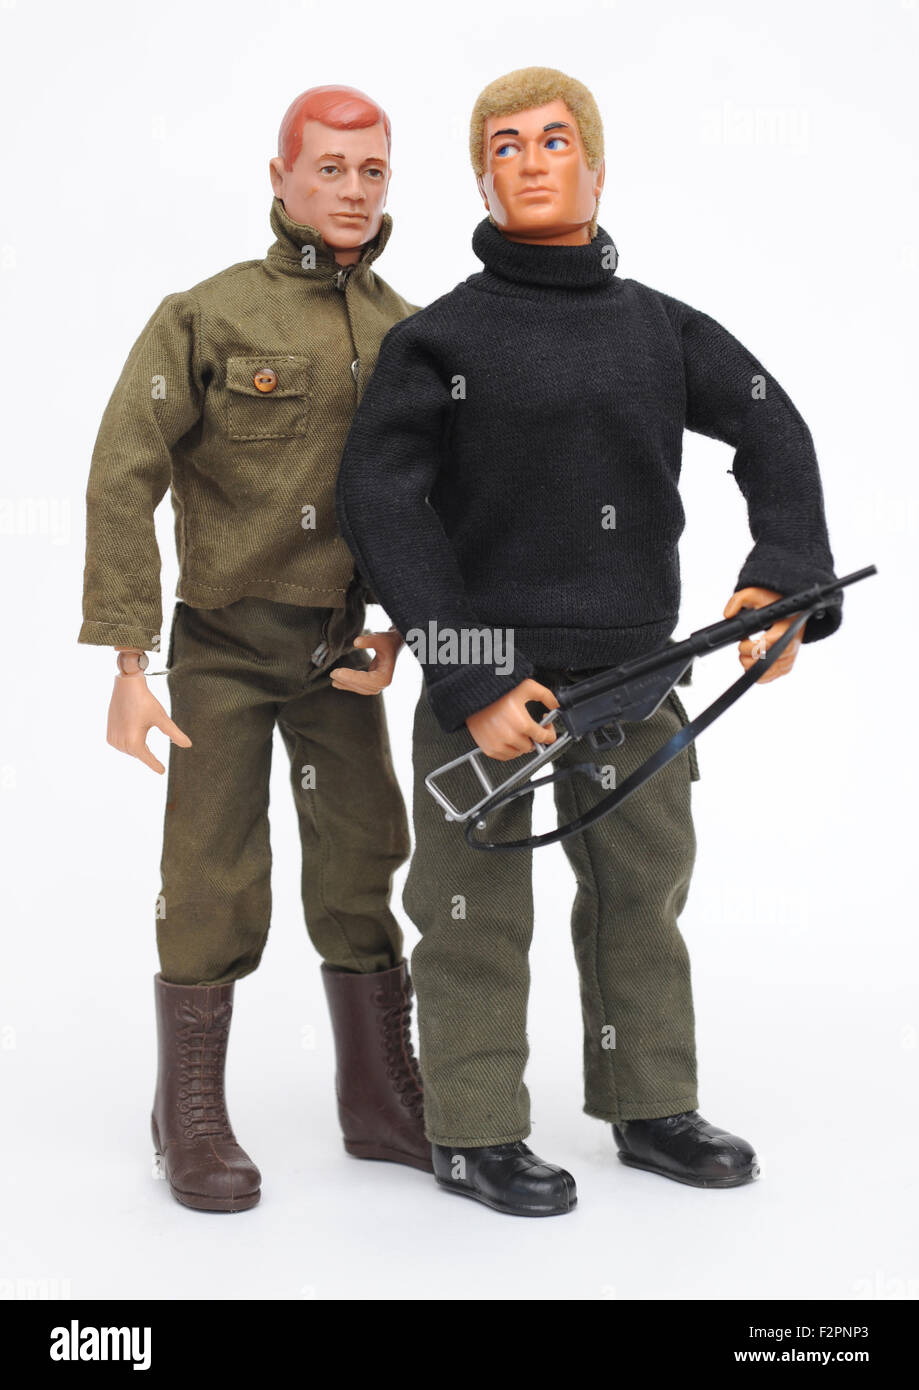 VINTAGE 1960S AND 1970S ACTION MAN DOLLS RE OLD TOYS VALUE LOFT FINDS SELL SELLING ITEMS